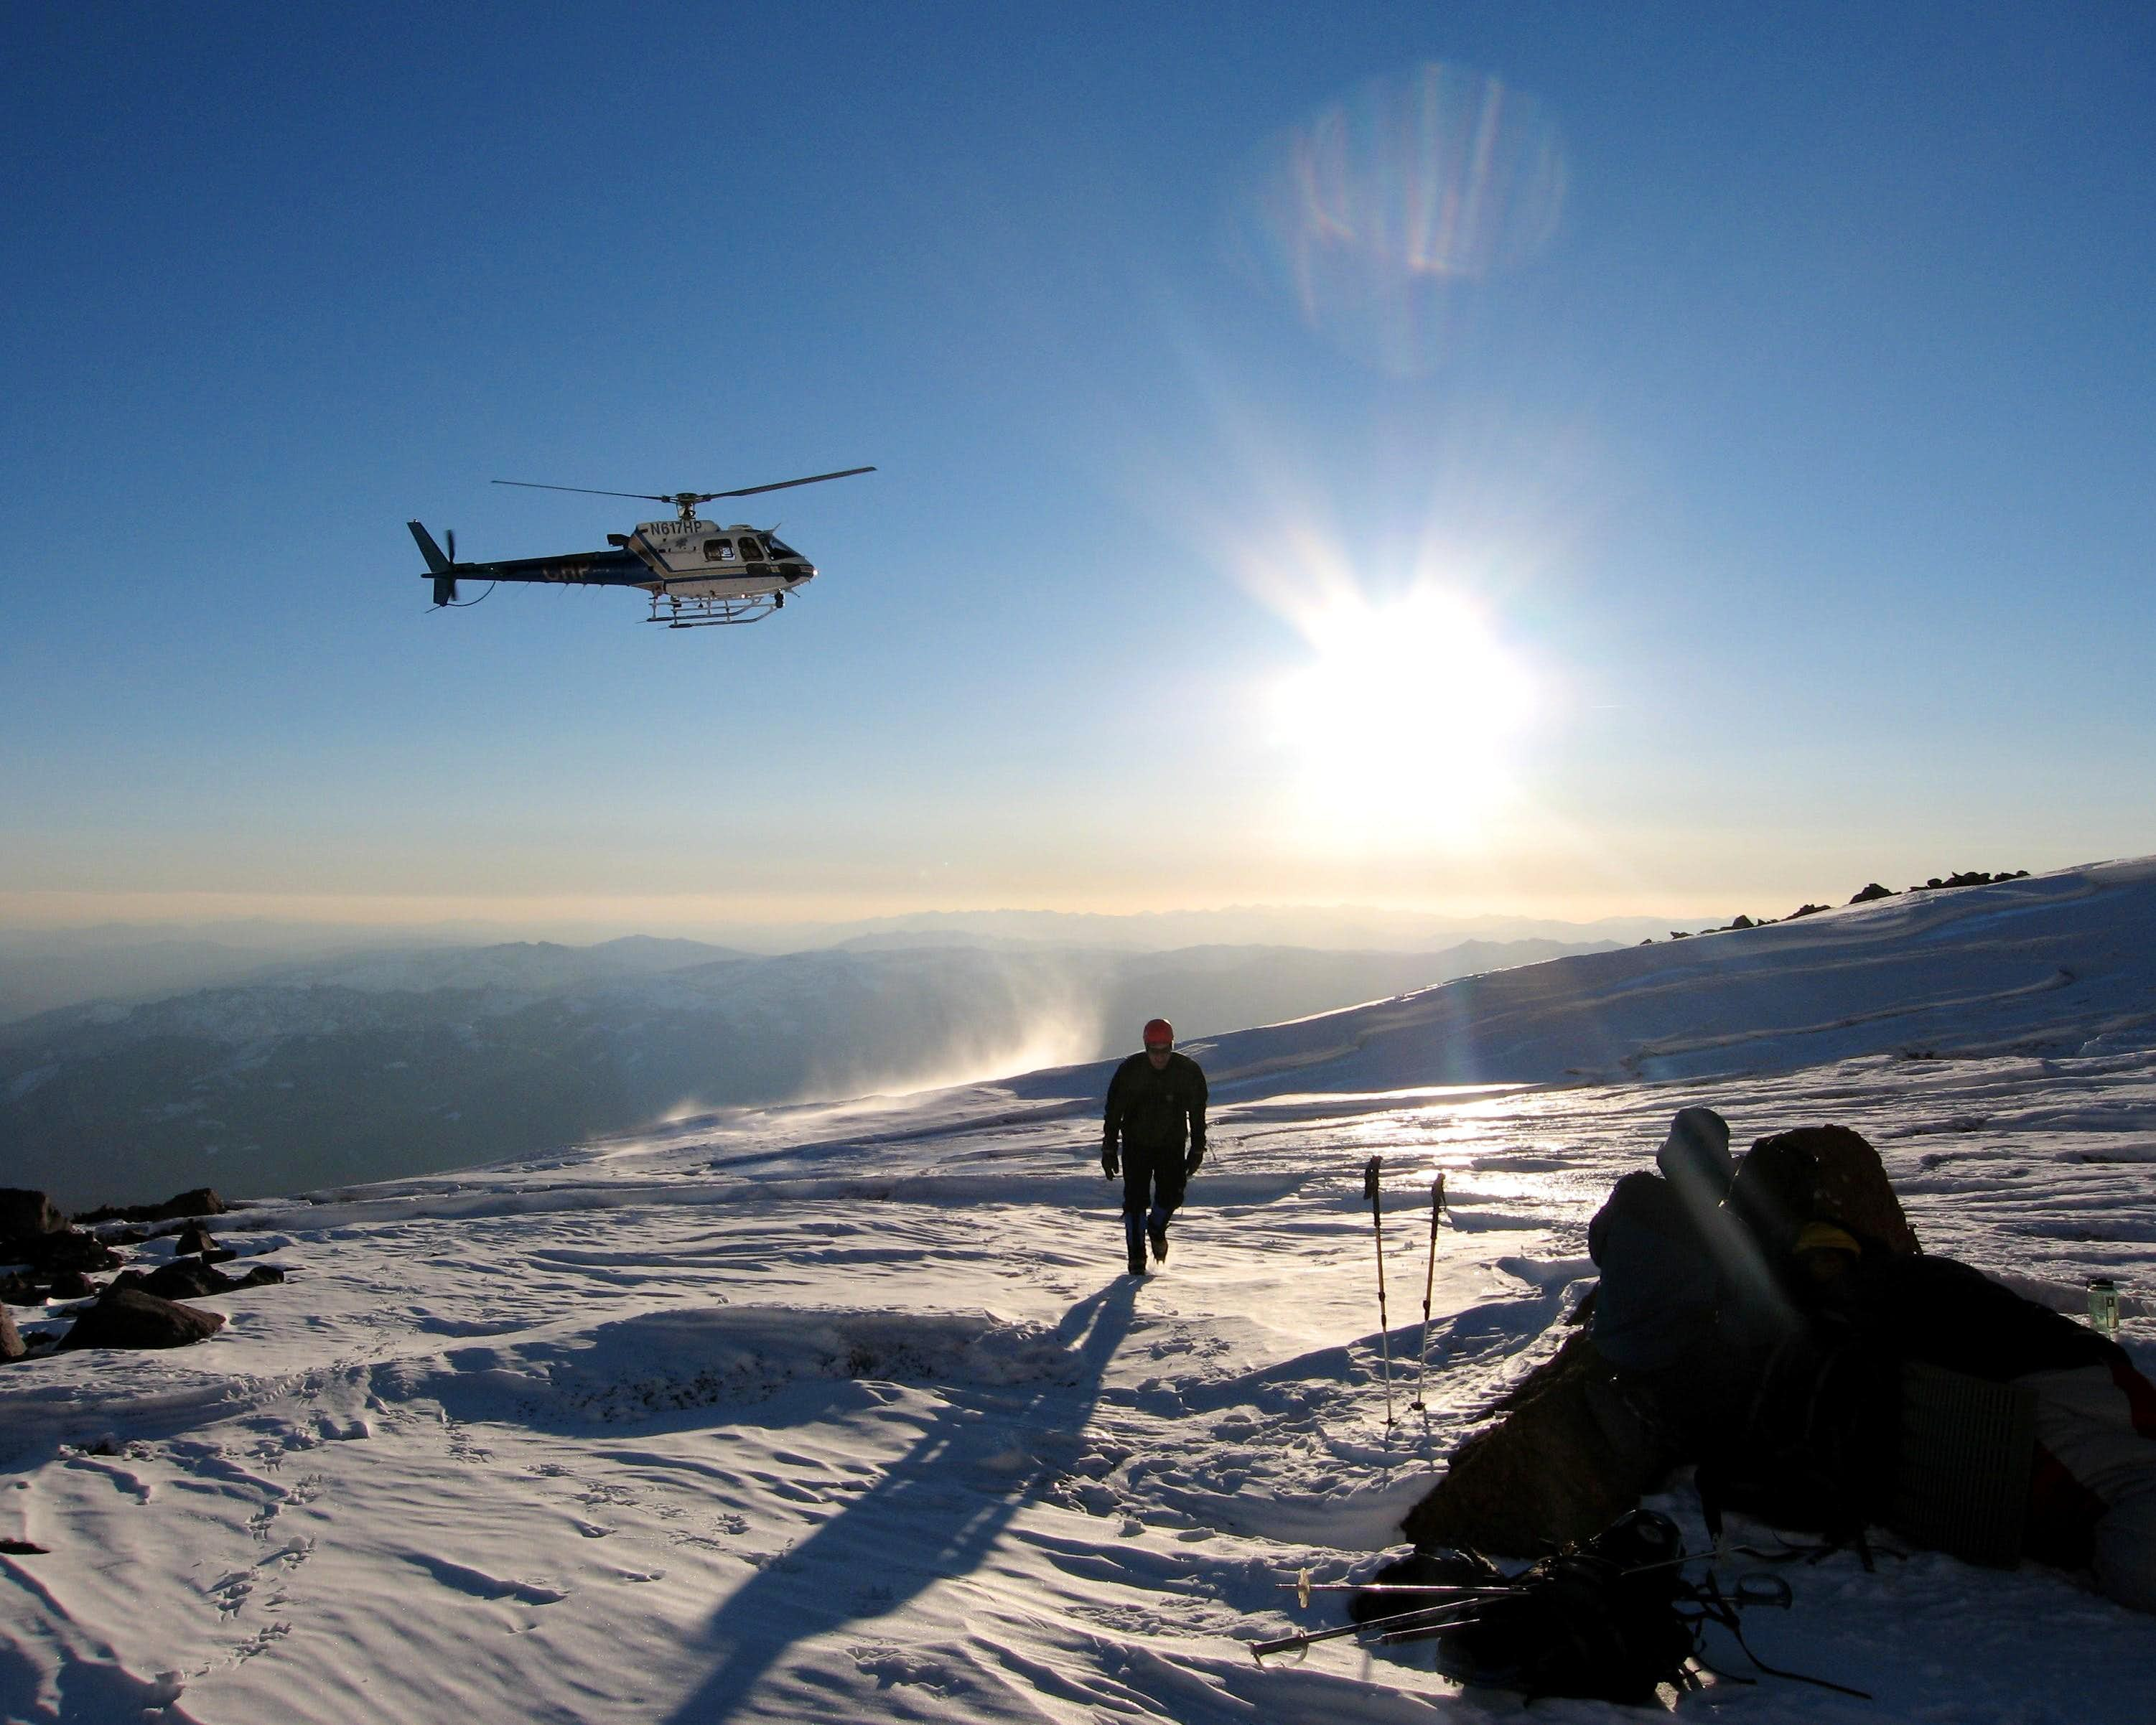 Winter Rescue on Mt. Shasta